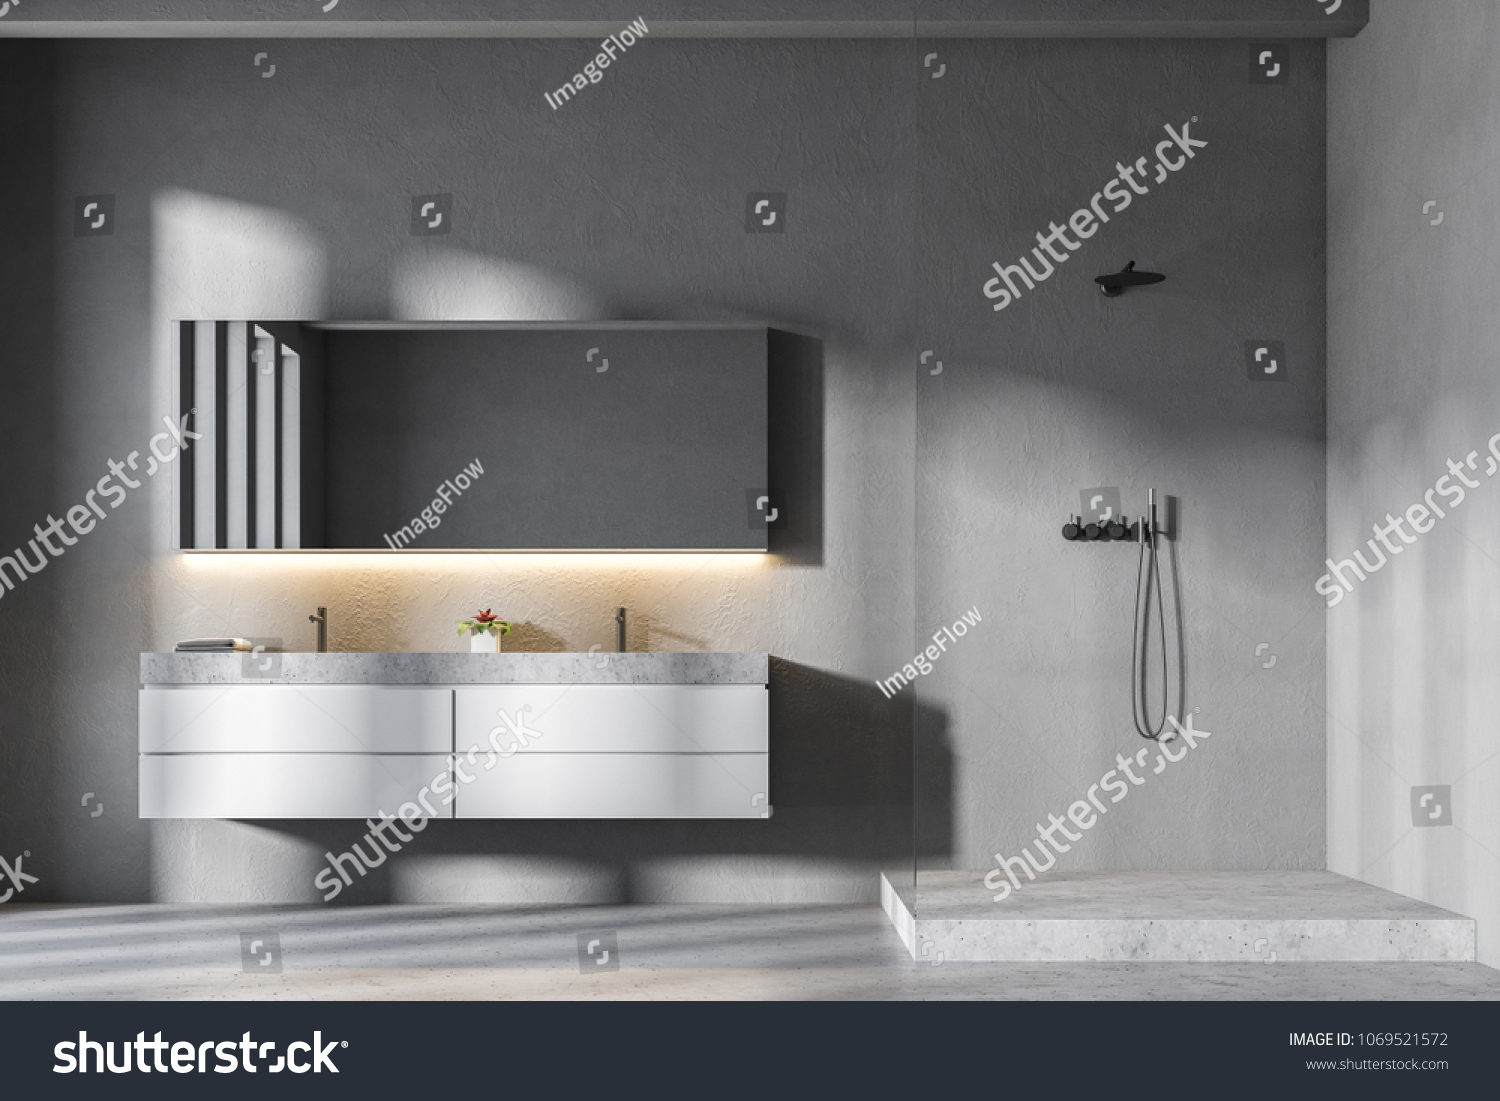 Gray Bathroom Interior With A Concrete Floor, A Shower Stall And A Double  Sink With